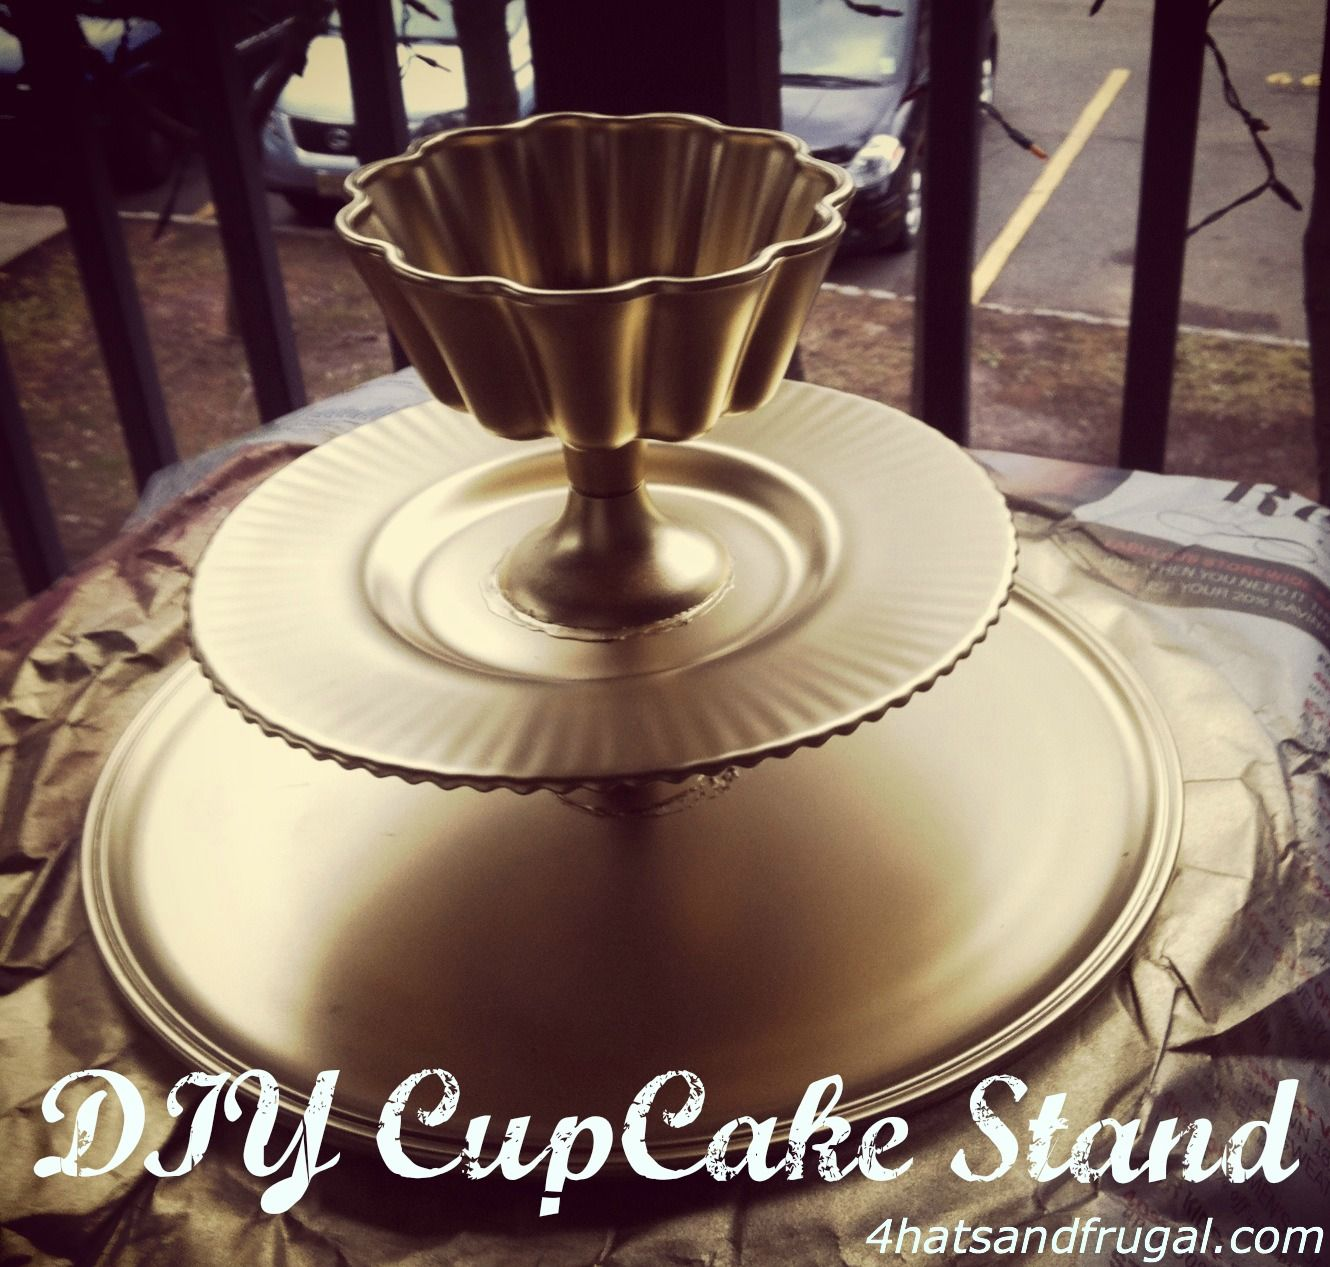 4 Hats and Frugal: DIY Cupcake Stand